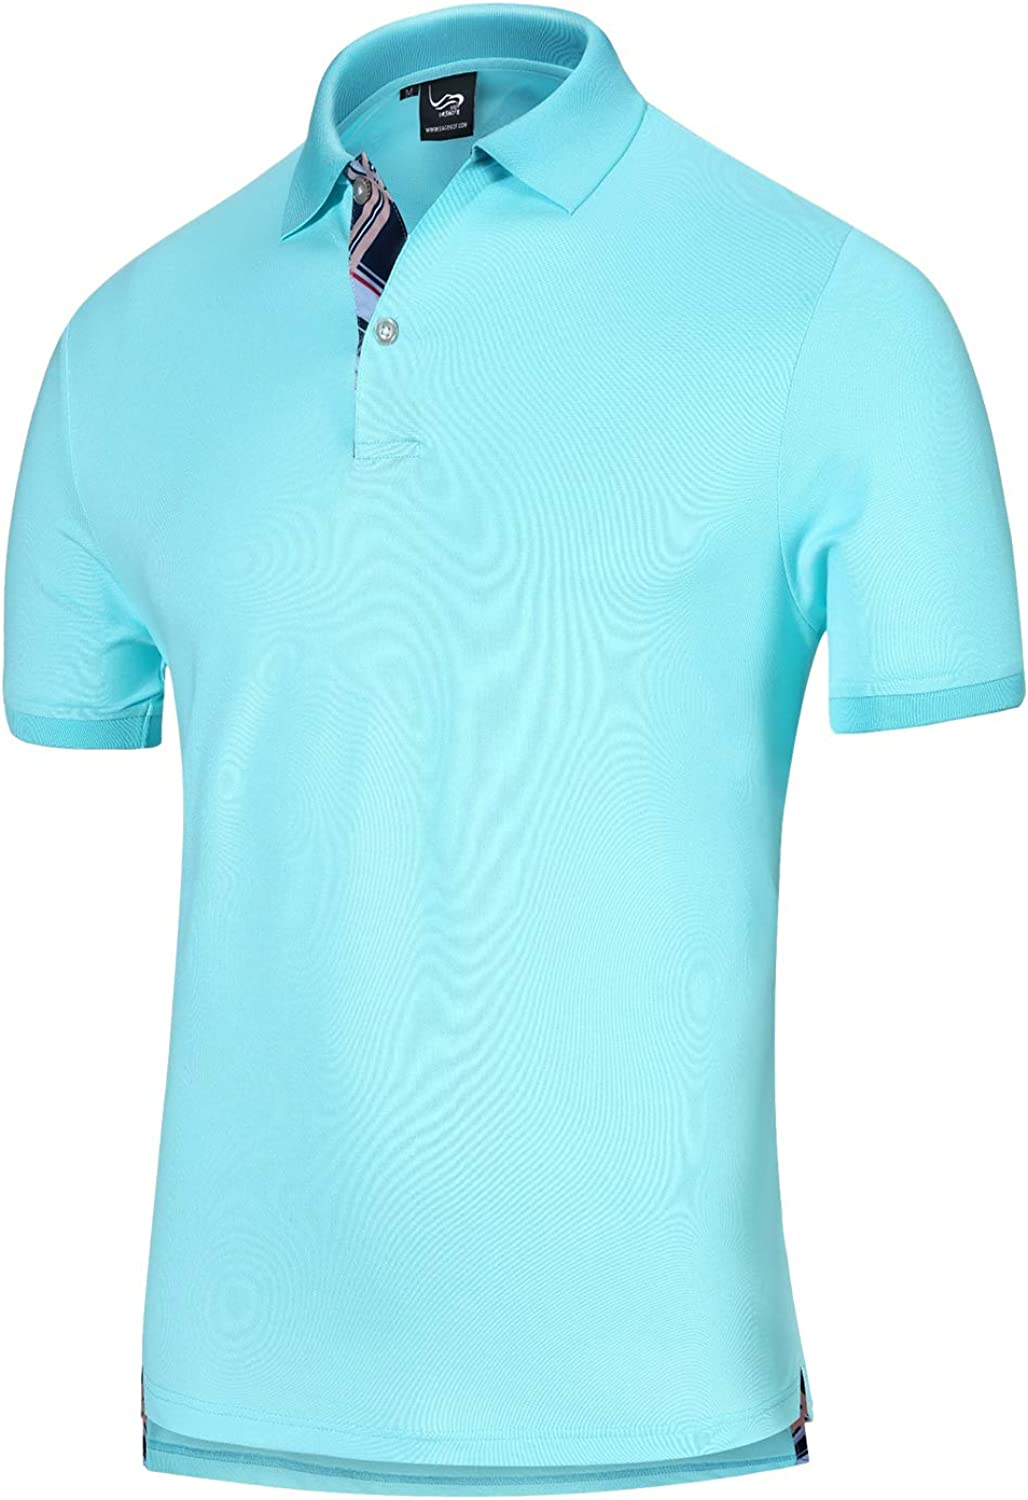 35% OFF EAGEGOF Popular shop is the lowest price challenge Slim Fit Men's Performance Tech Polo Shirt Stretch Golf